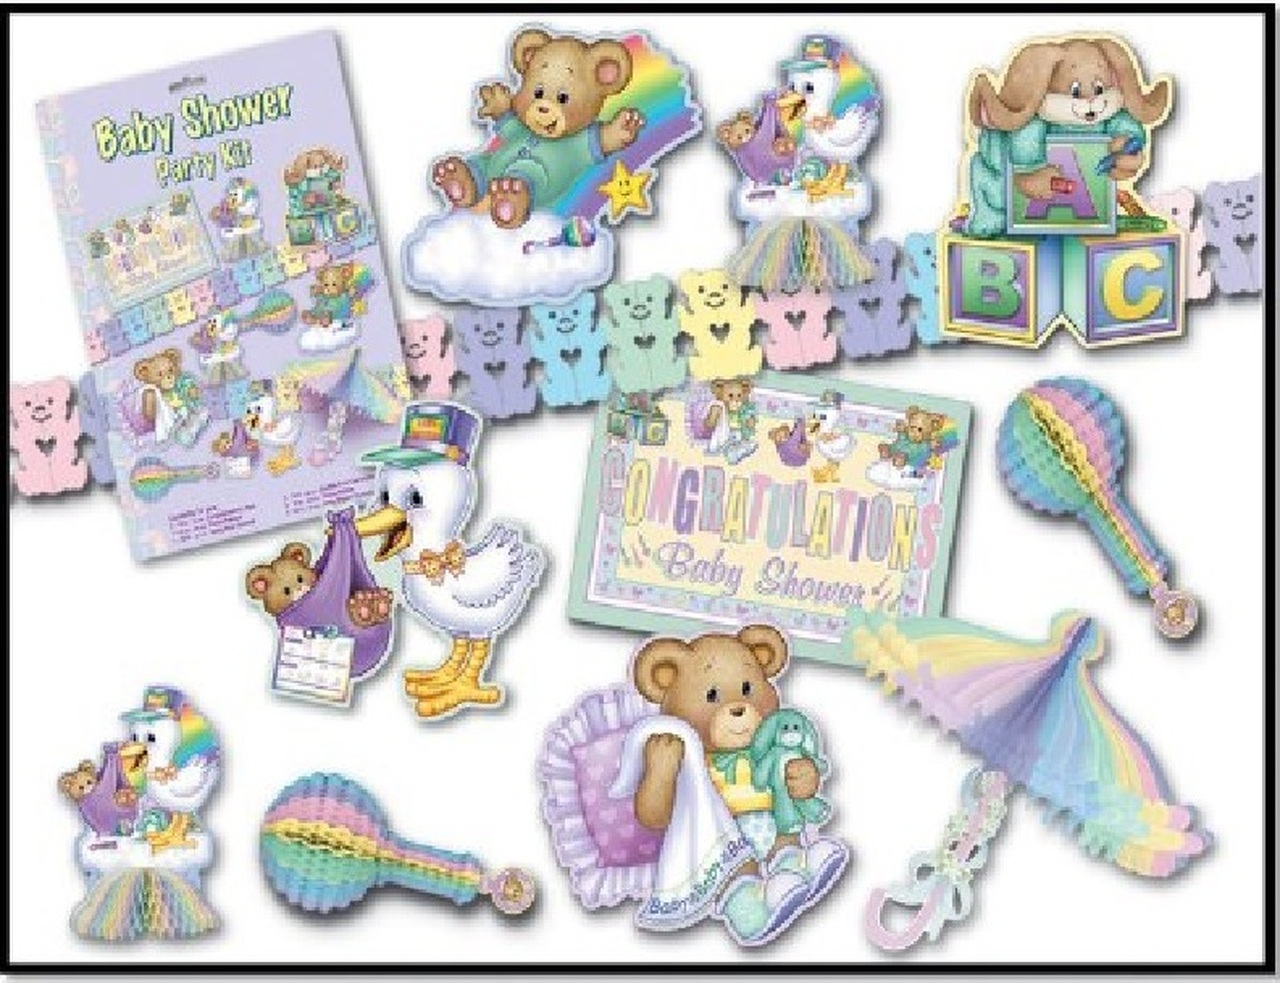 66 Piece Cuddle Time Gender Neutral Baby Shower Party Decorating